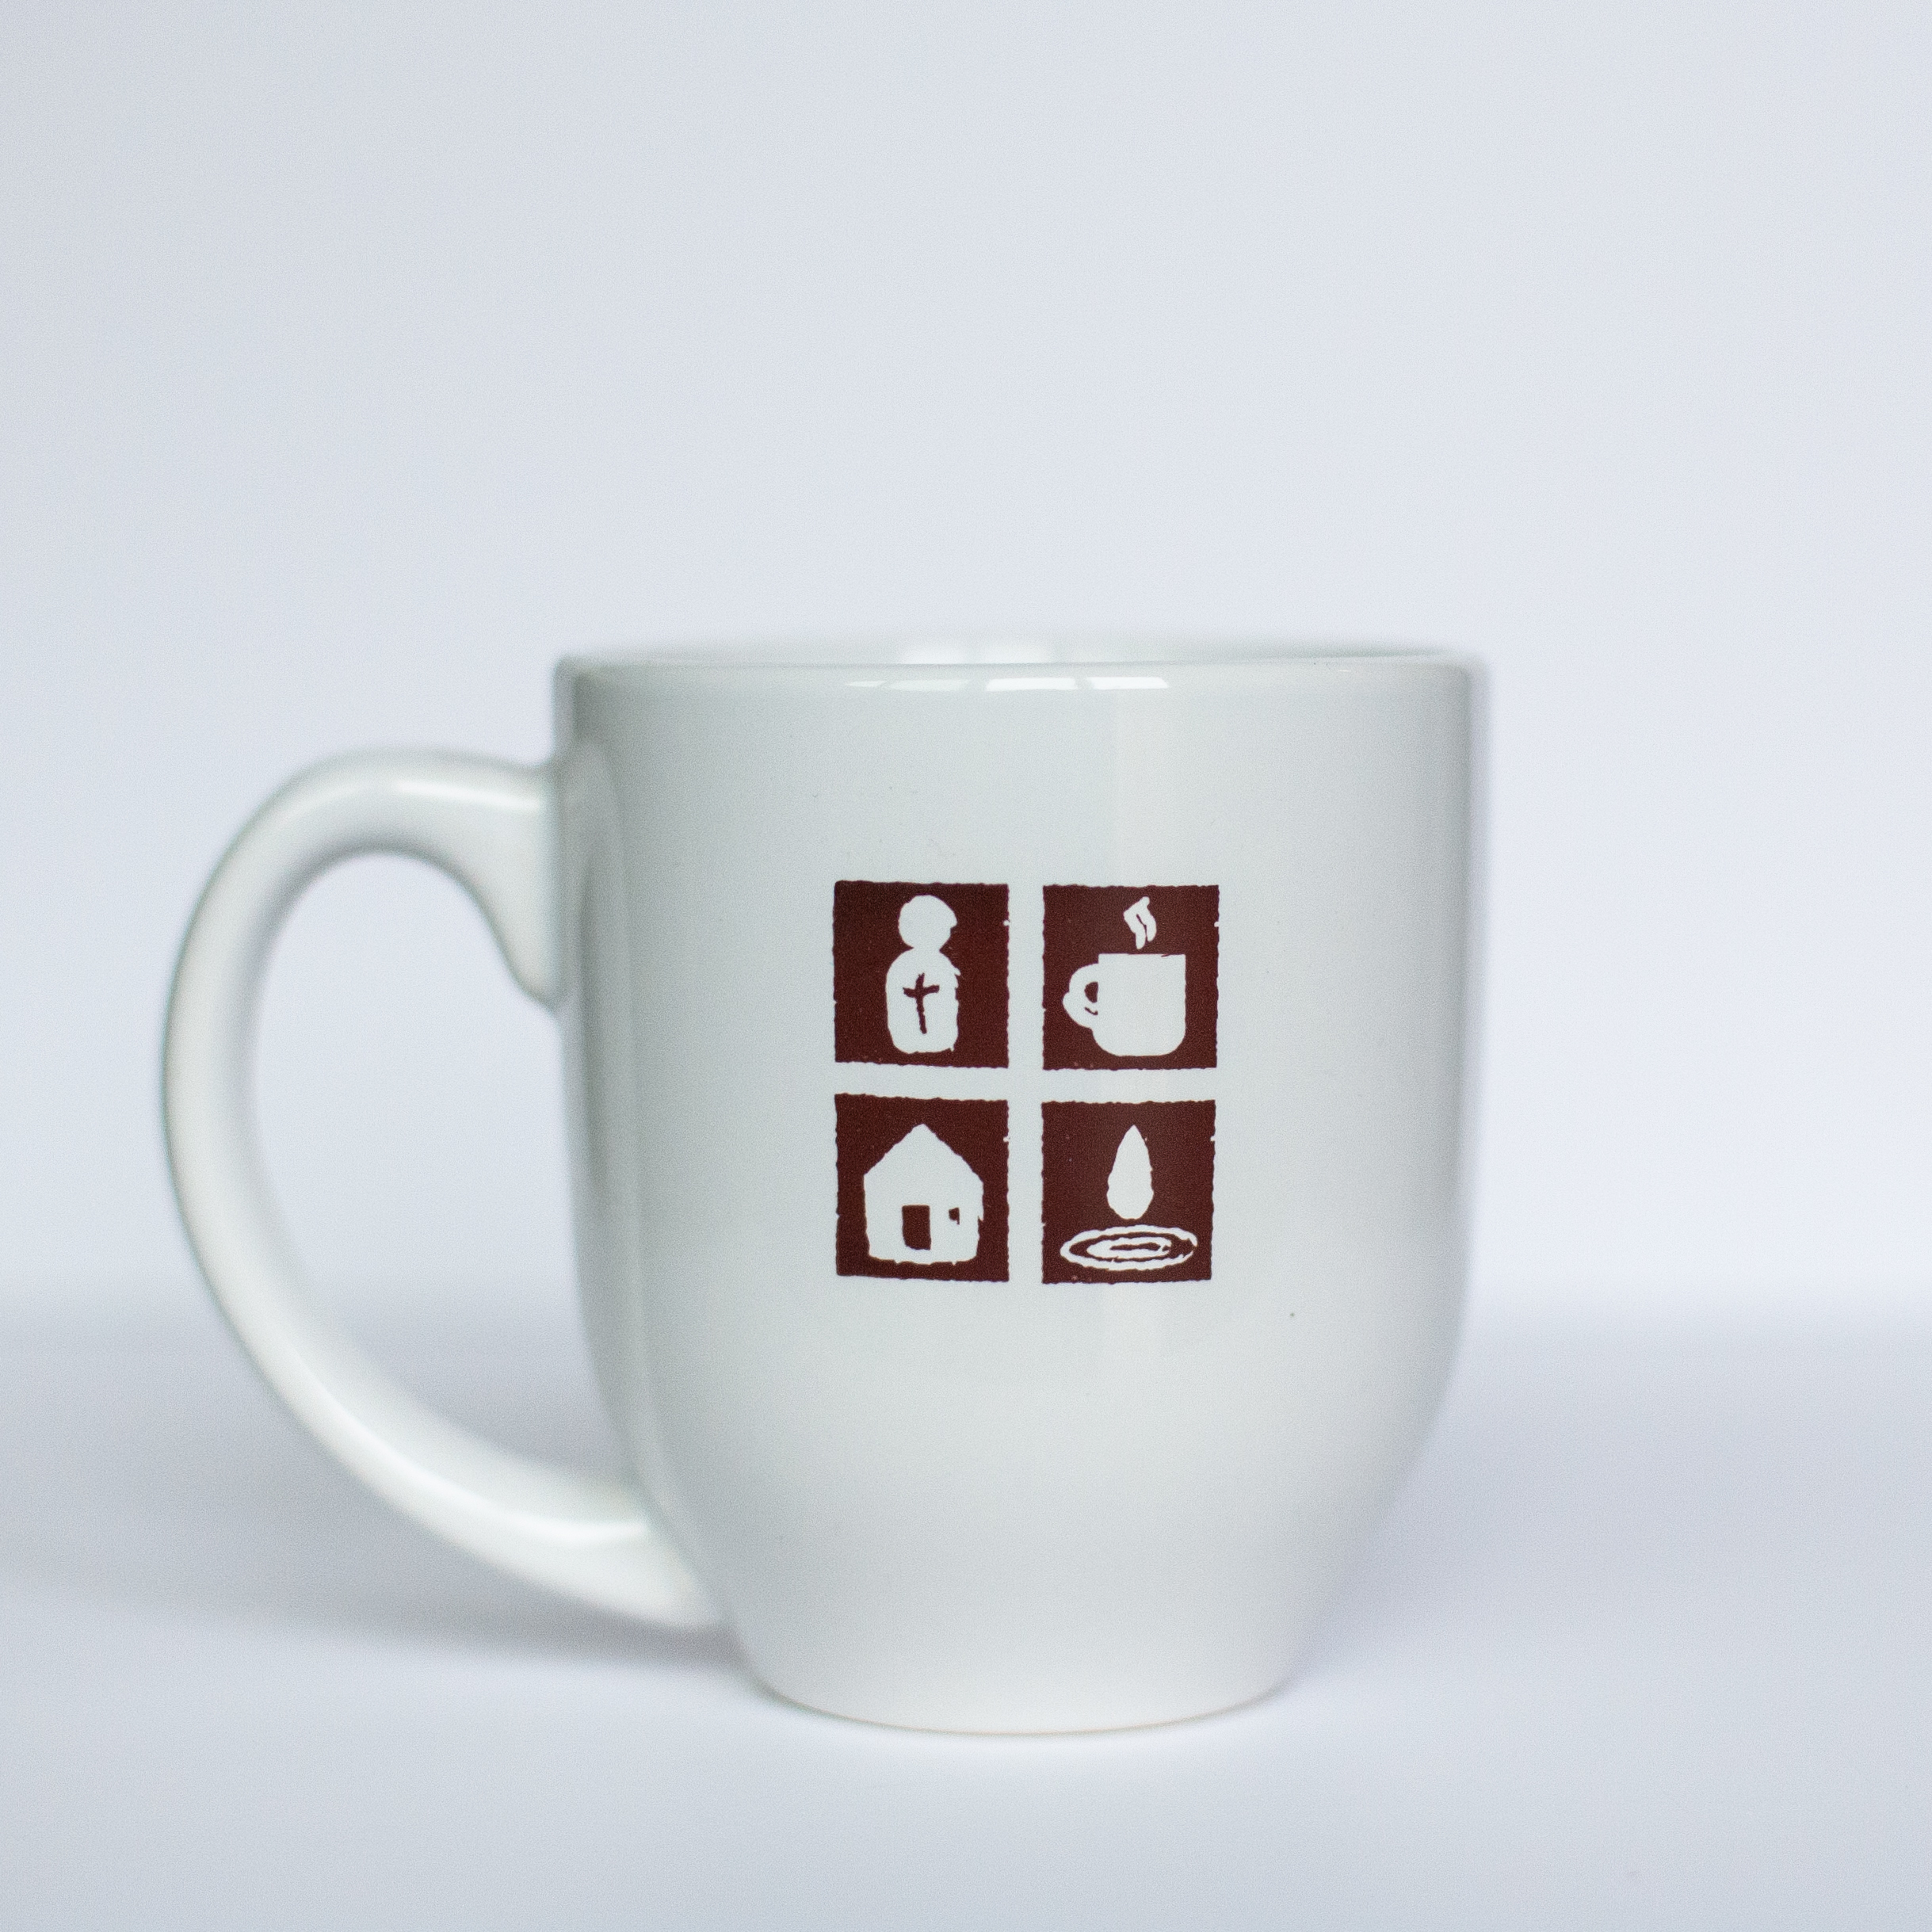 HOPE Coffee 16 oz White Ceramic Mug